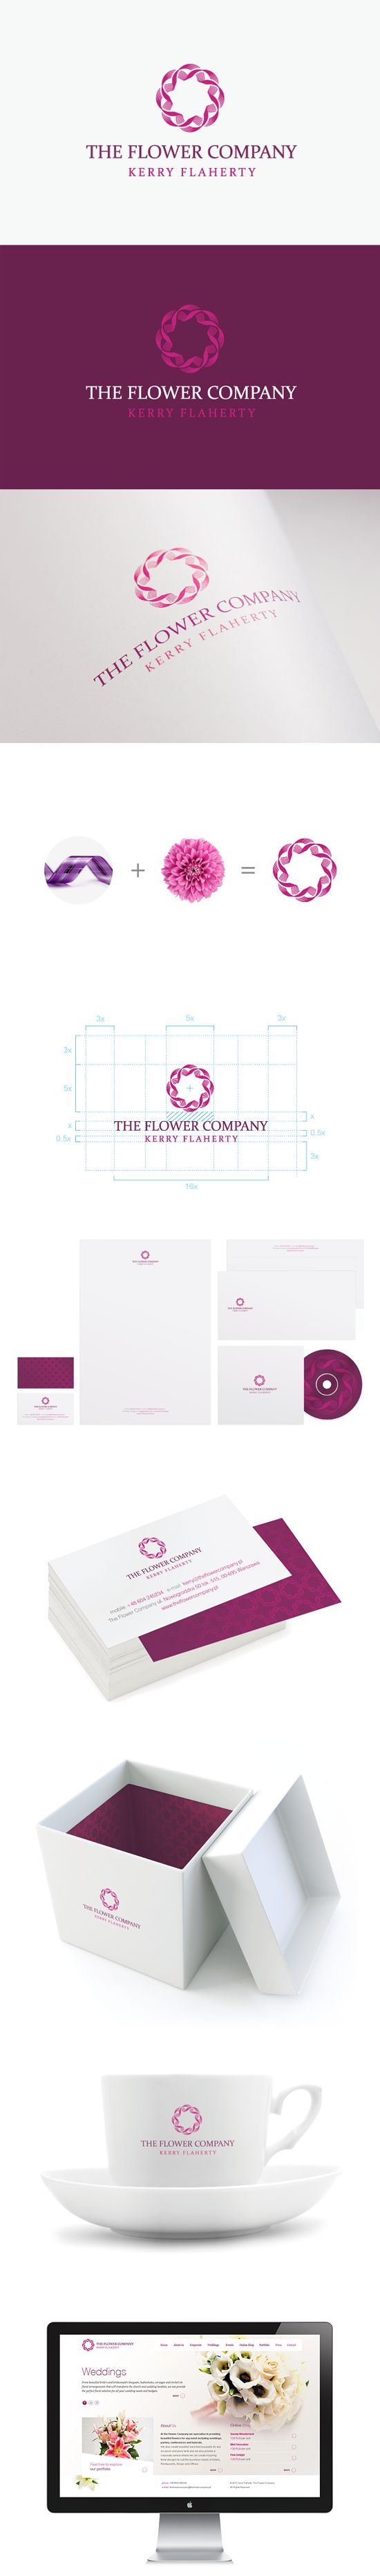 The Flower Company by Kreujemy #packaging #branding #marketing PD